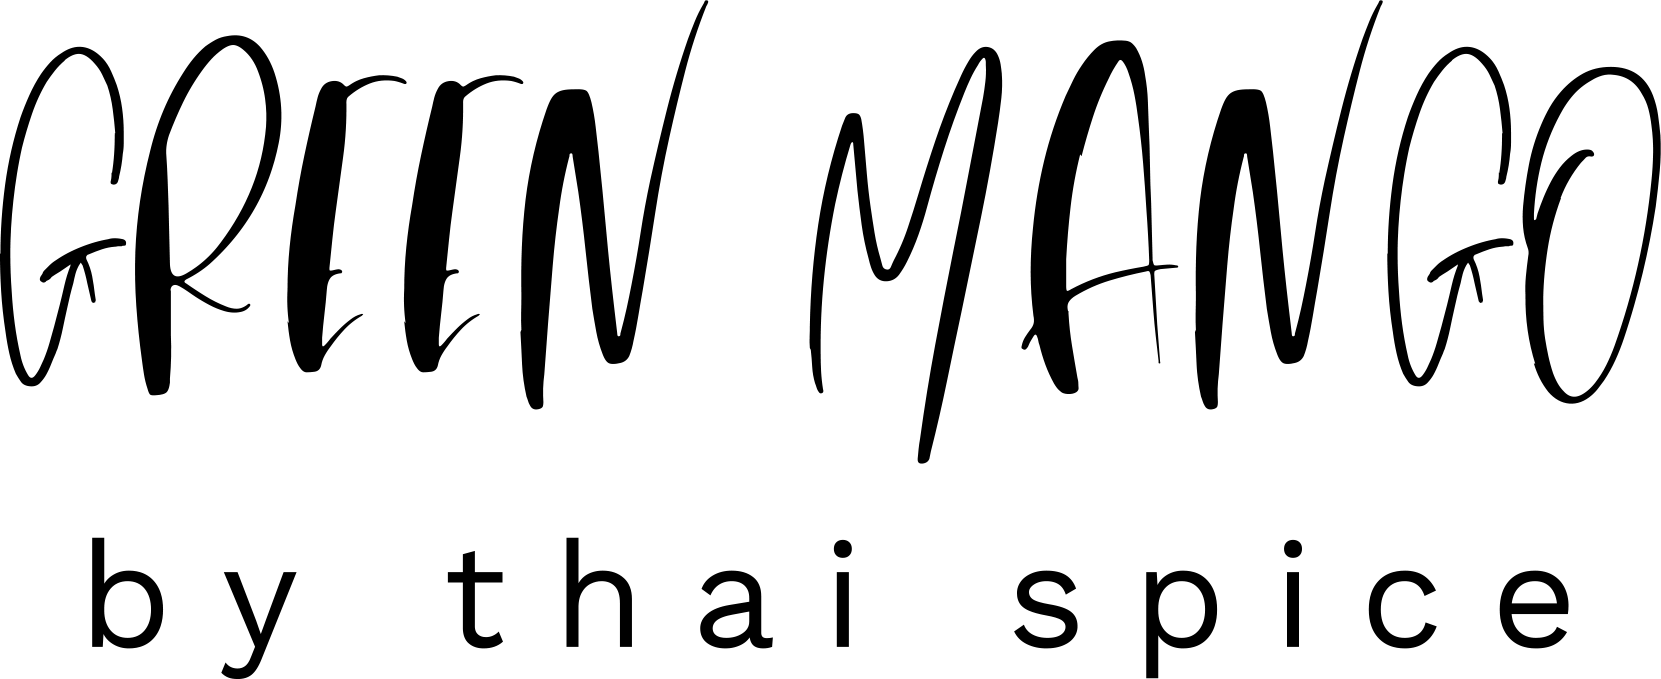 black_logo_transparent.png